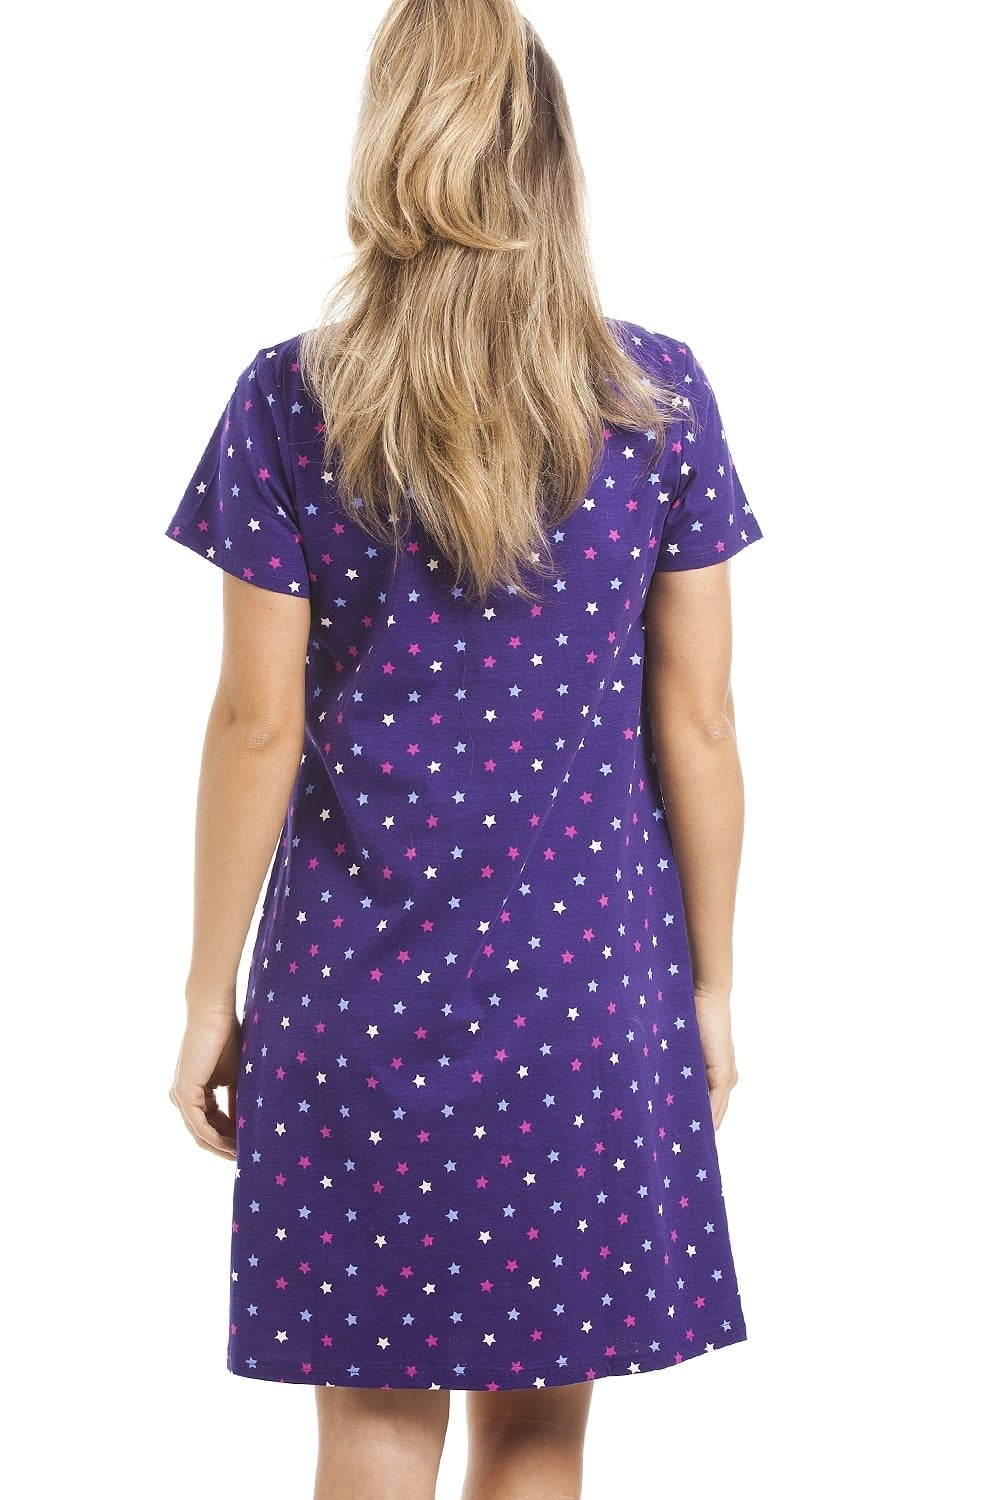 Camille Various Colour And Print Smooth Soft Cotton Summer Nightdresses 8f1ad8f0b